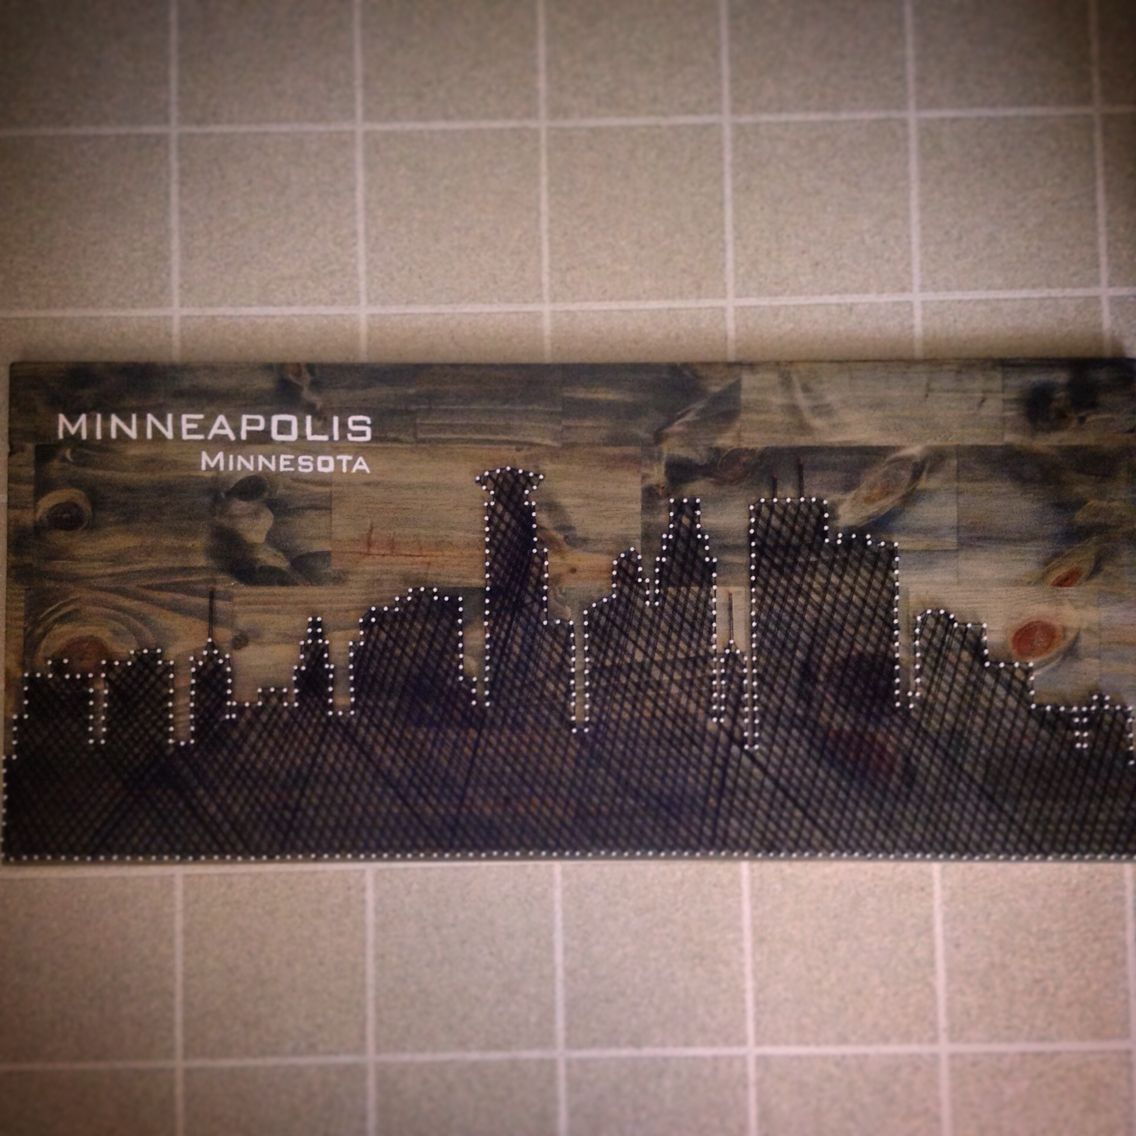 String/nail art of the Minneapolis Skyline. Pretty simple to do ...